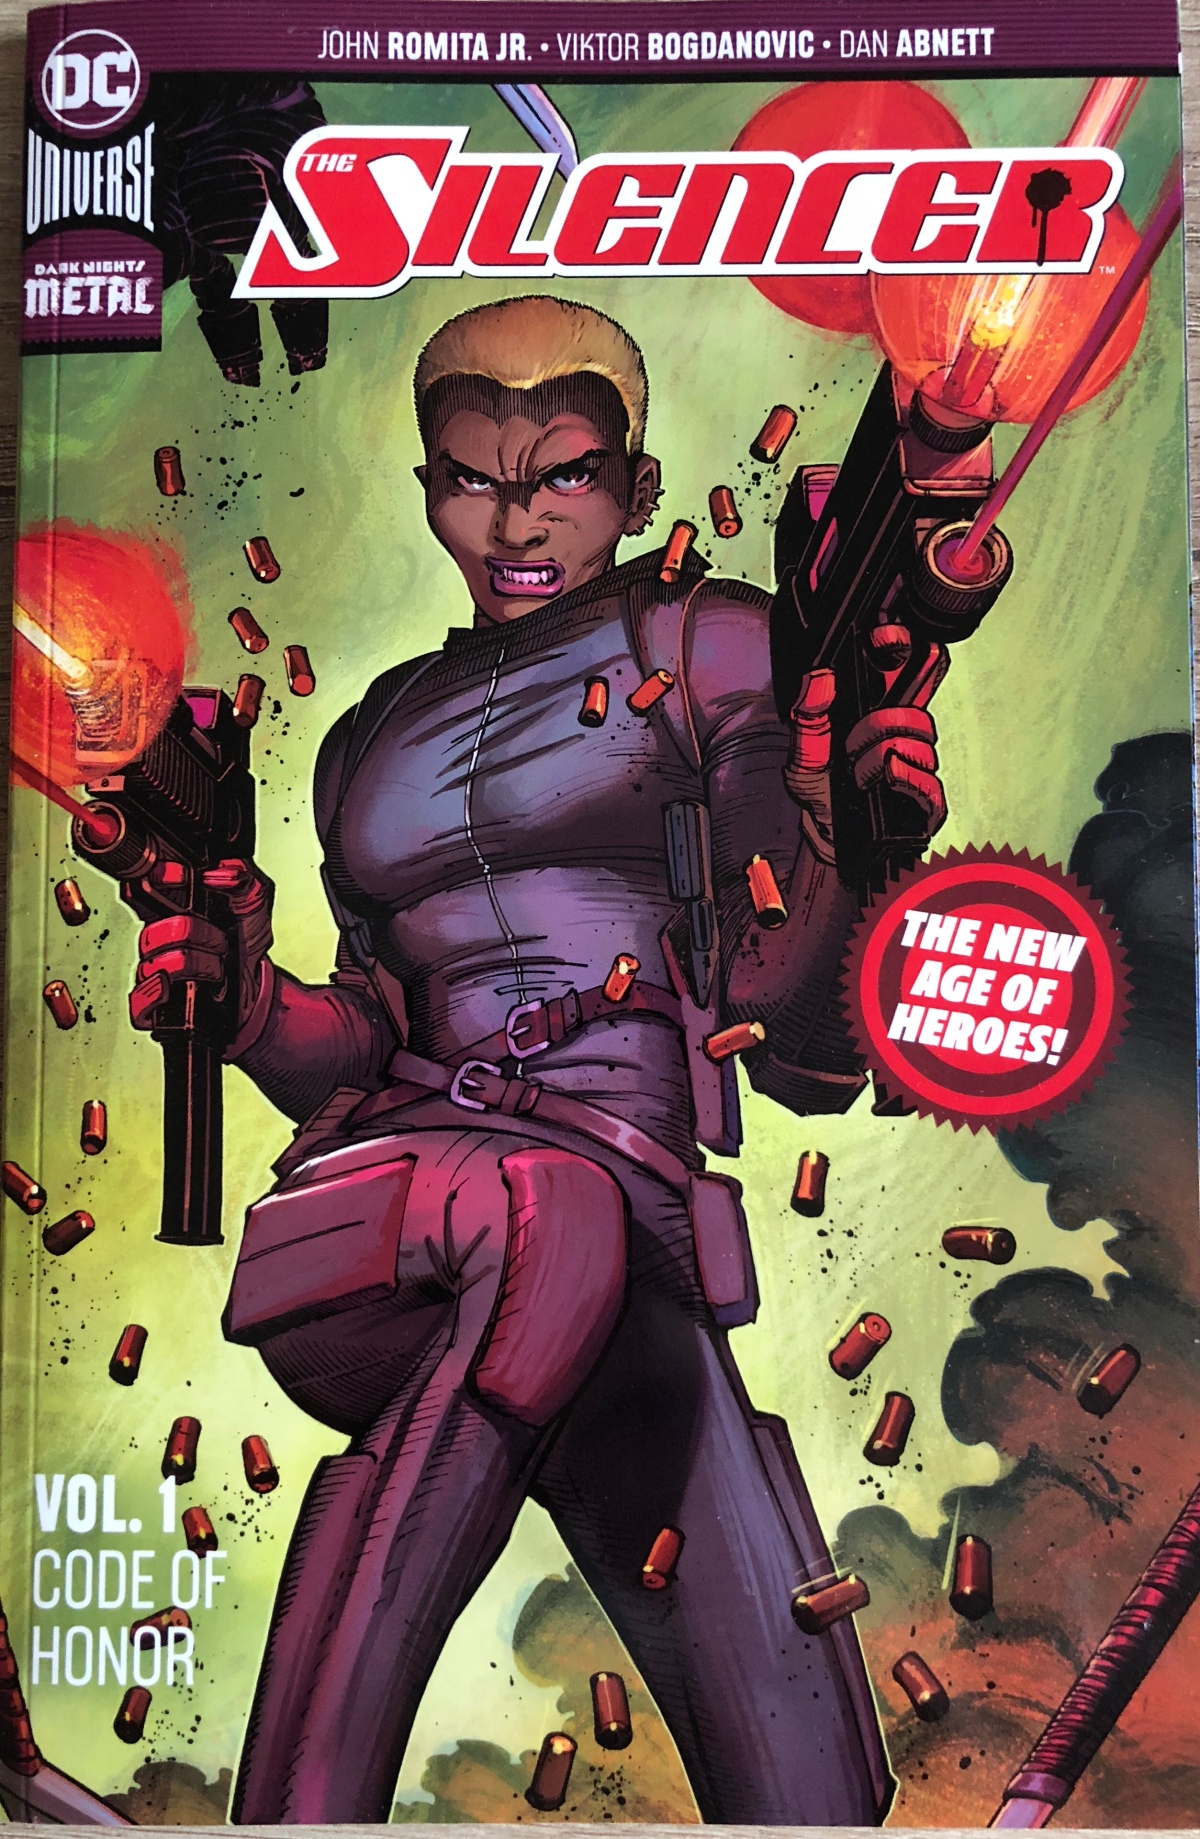 The Silencer Vol. 1: Code of Honor [New Age of Heroes] |Review